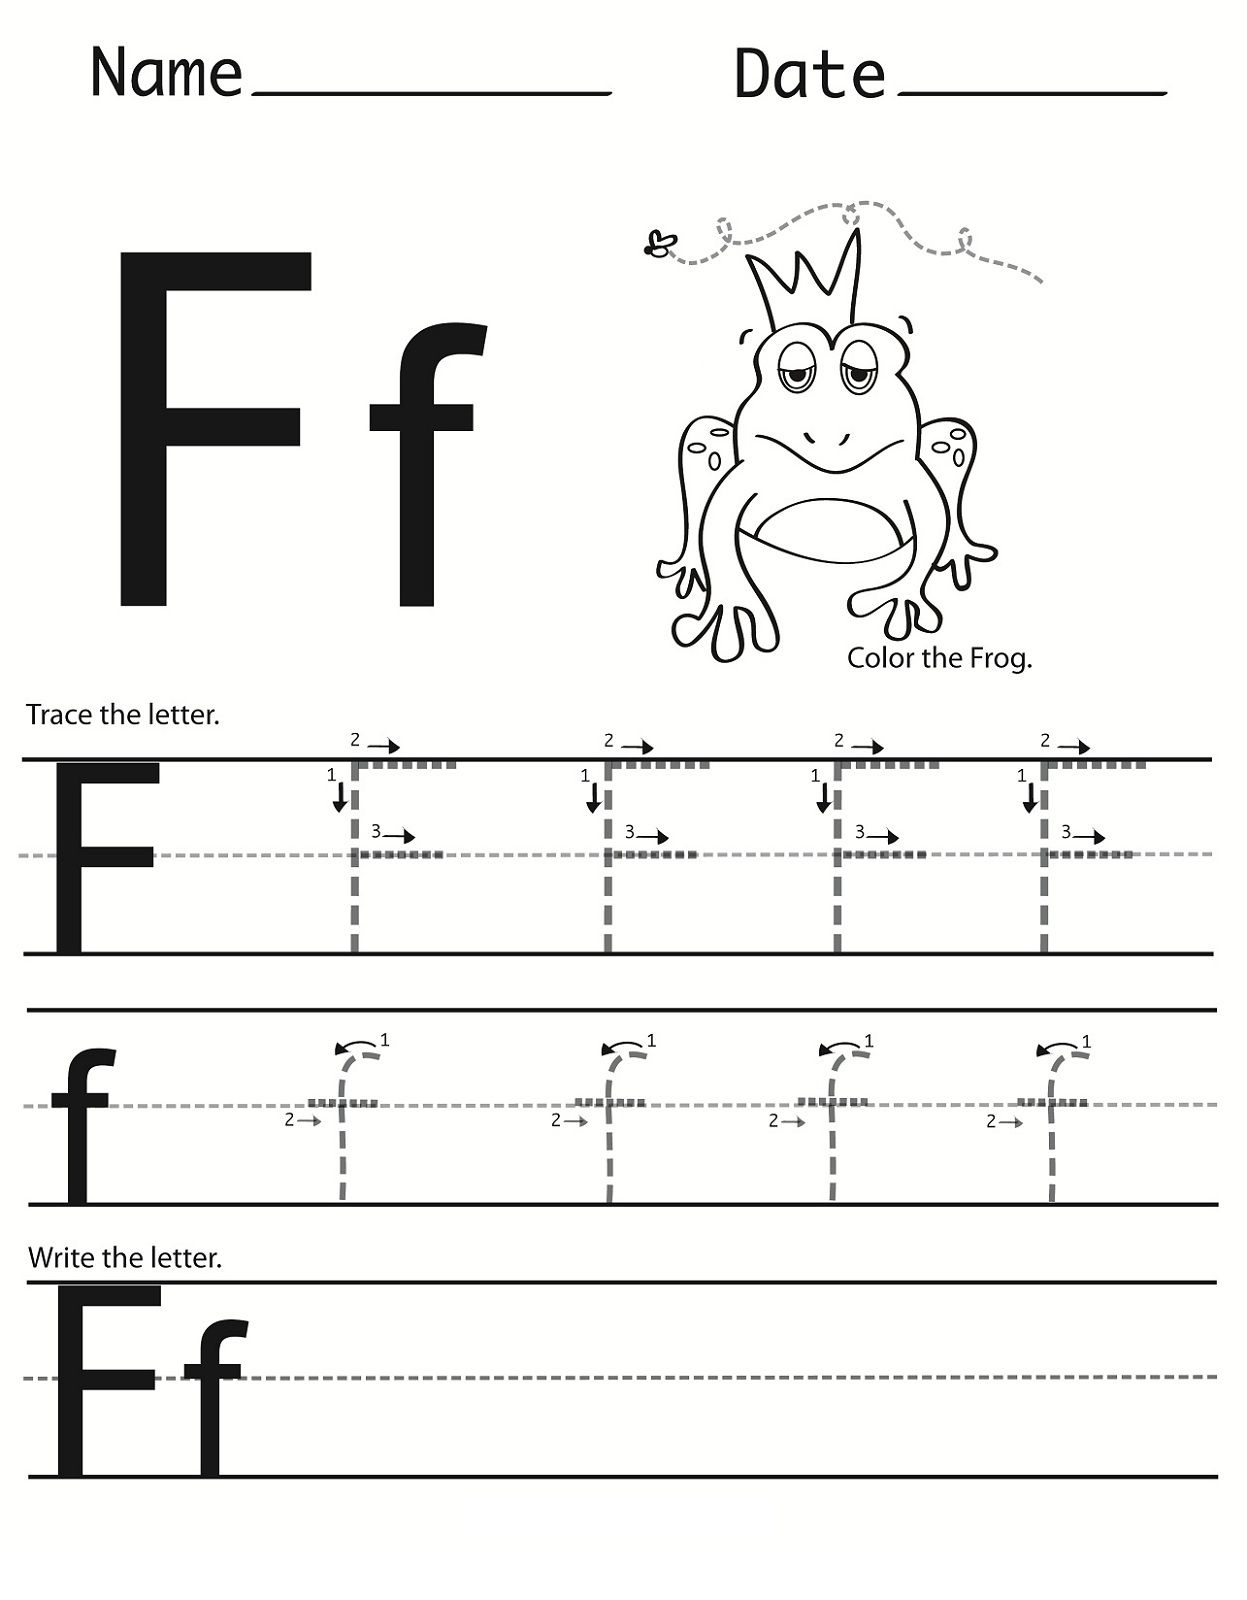 Letter F Worksheet For Preschool And Kindergarten inside Letter F Worksheets For Kindergarten Pdf